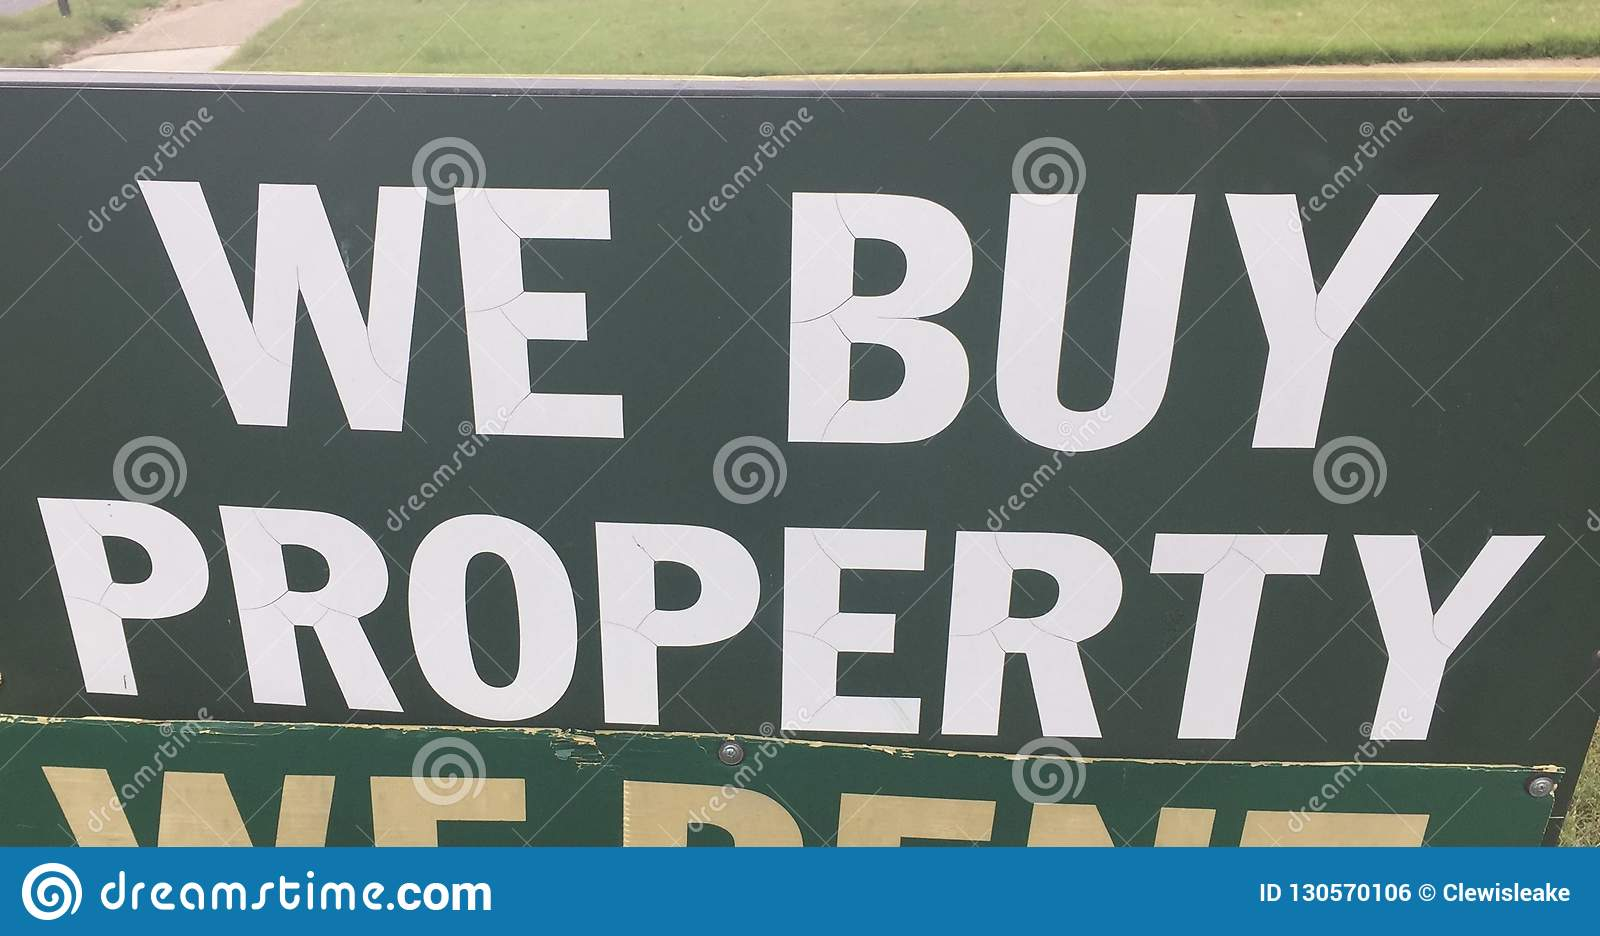 Real Estate Property Buying Company Stock Photo - Image of